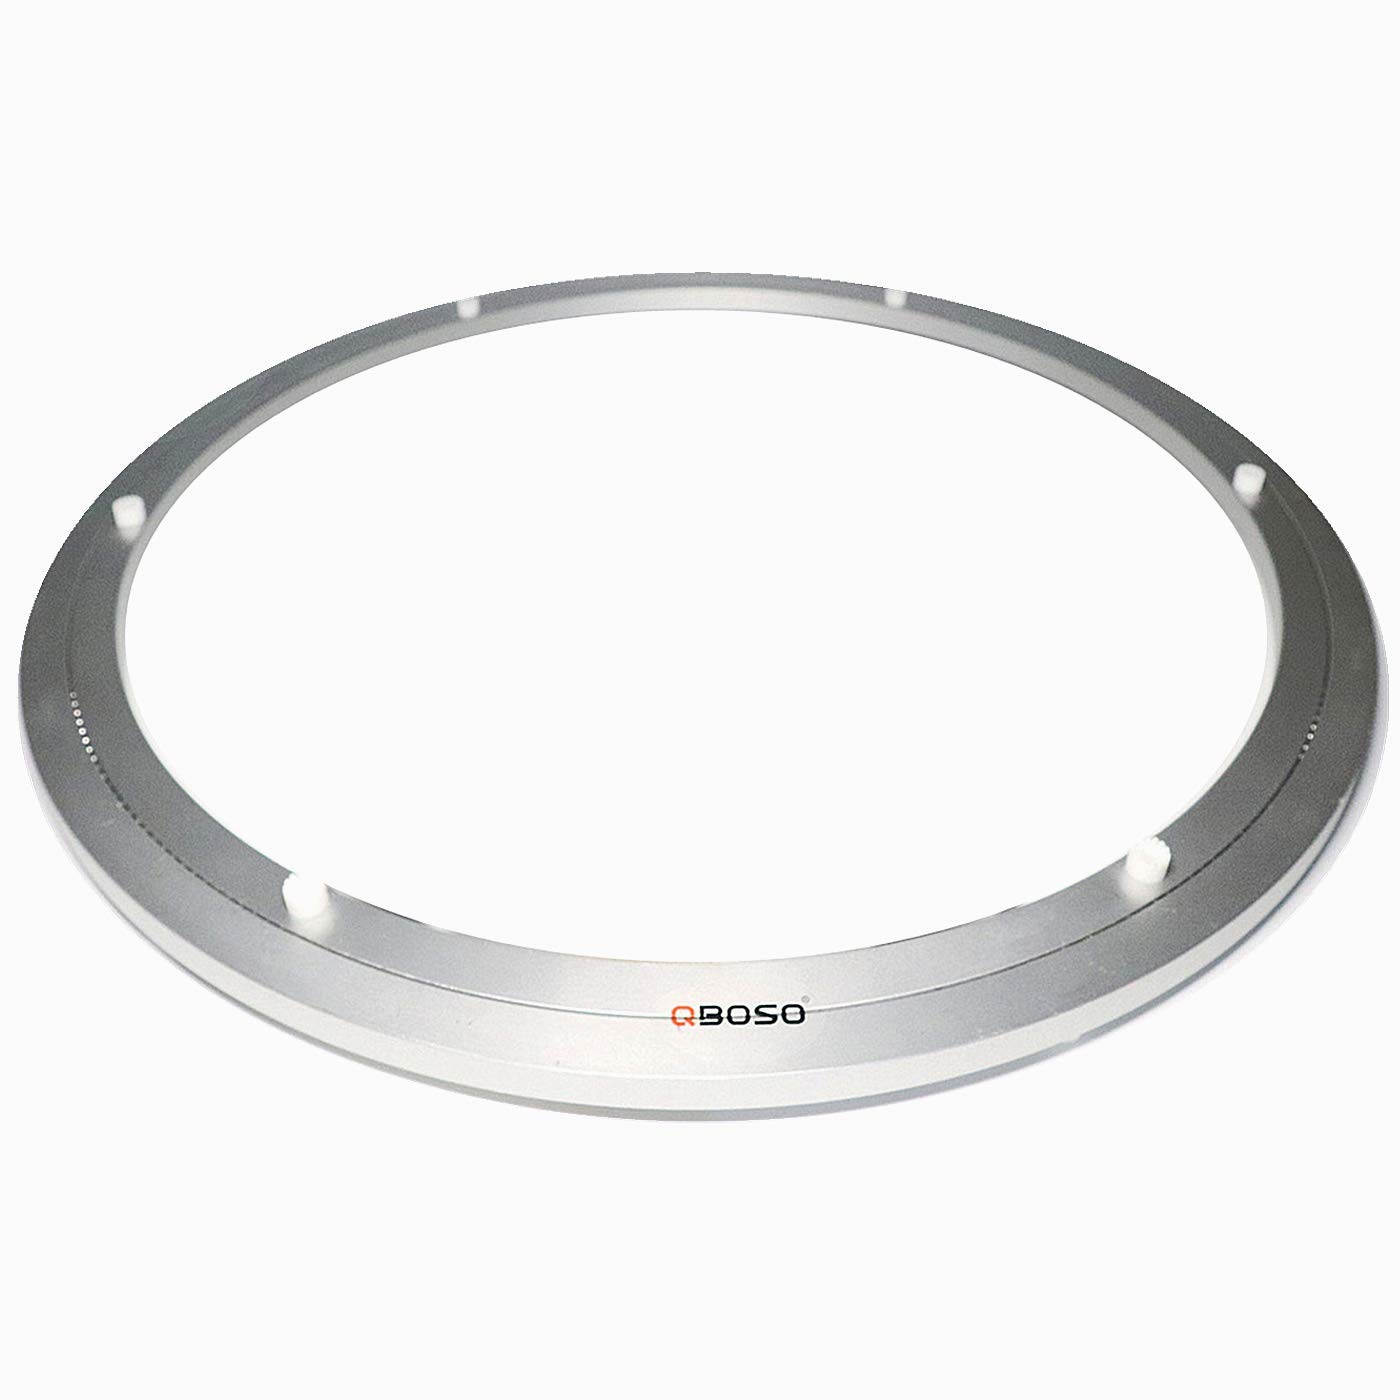 QBOSO Aluminum Lazy Susan Ring with Ball Bearing (24-Inch 80-500 Lb Load Capacity) Turntable Hardware for Round Dining Table Smooth Swivel Plate by QBOSO